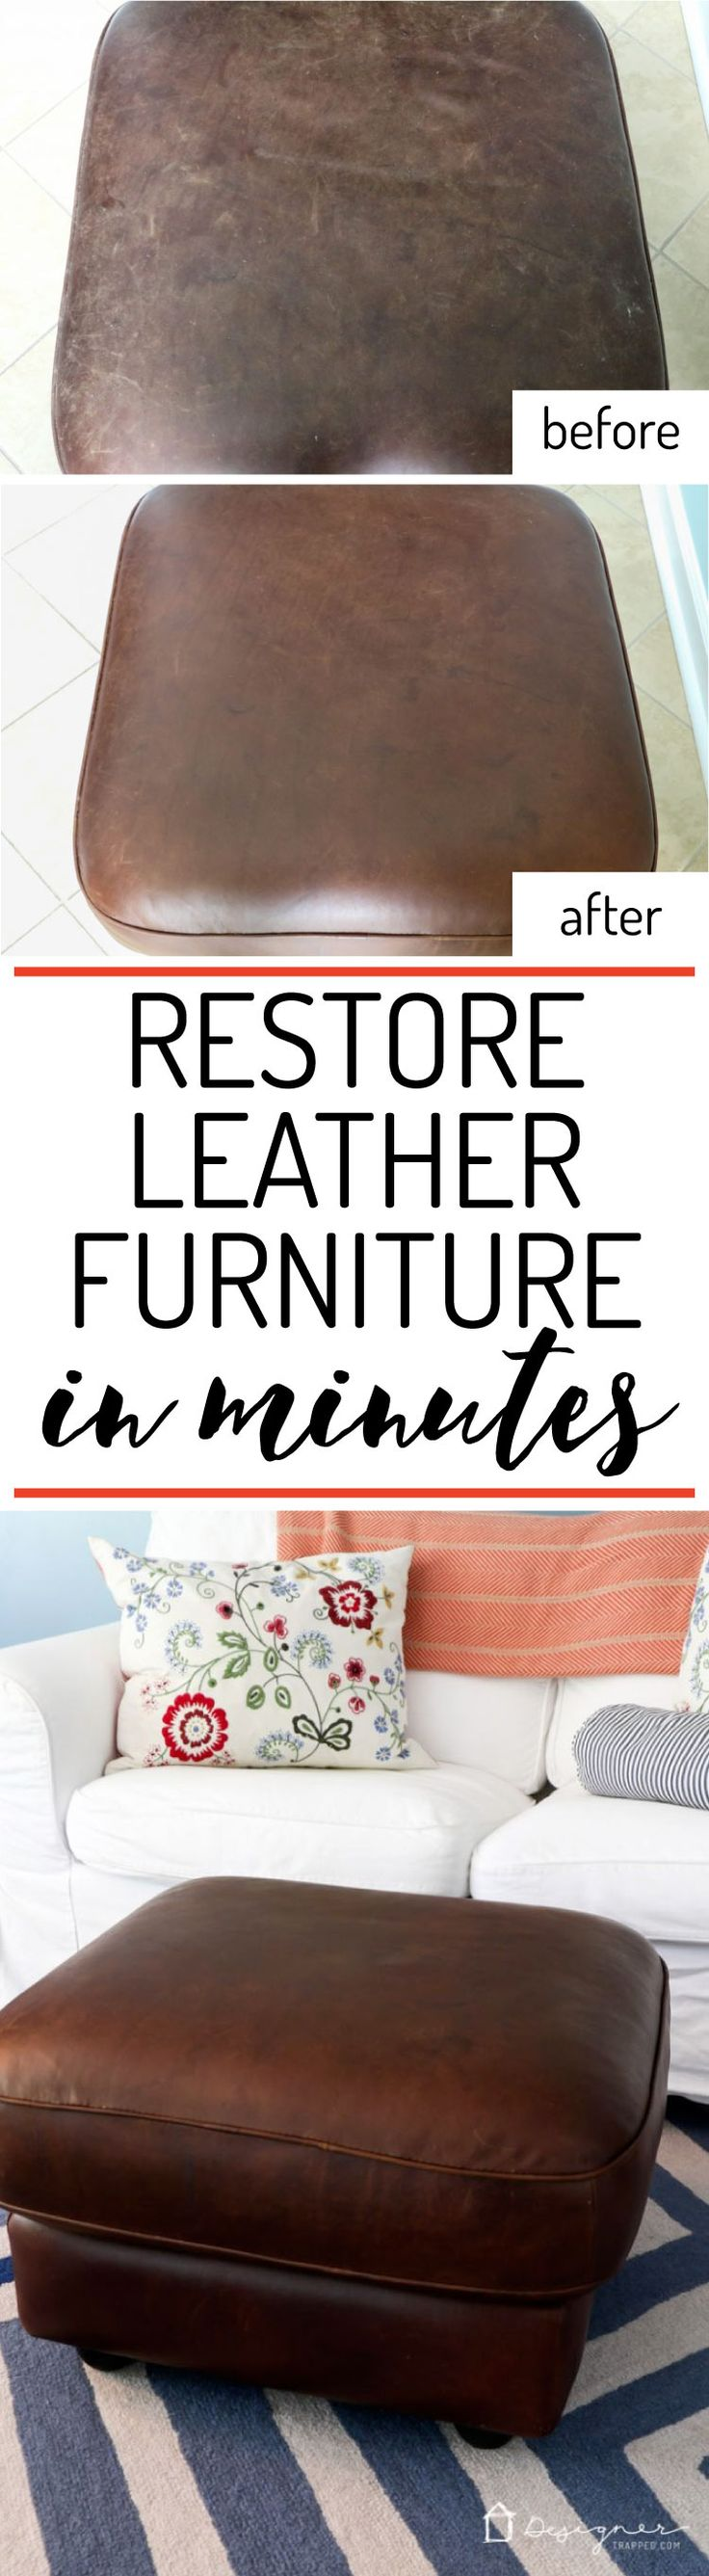 Best 25 Leather couch repair ideas on Pinterest